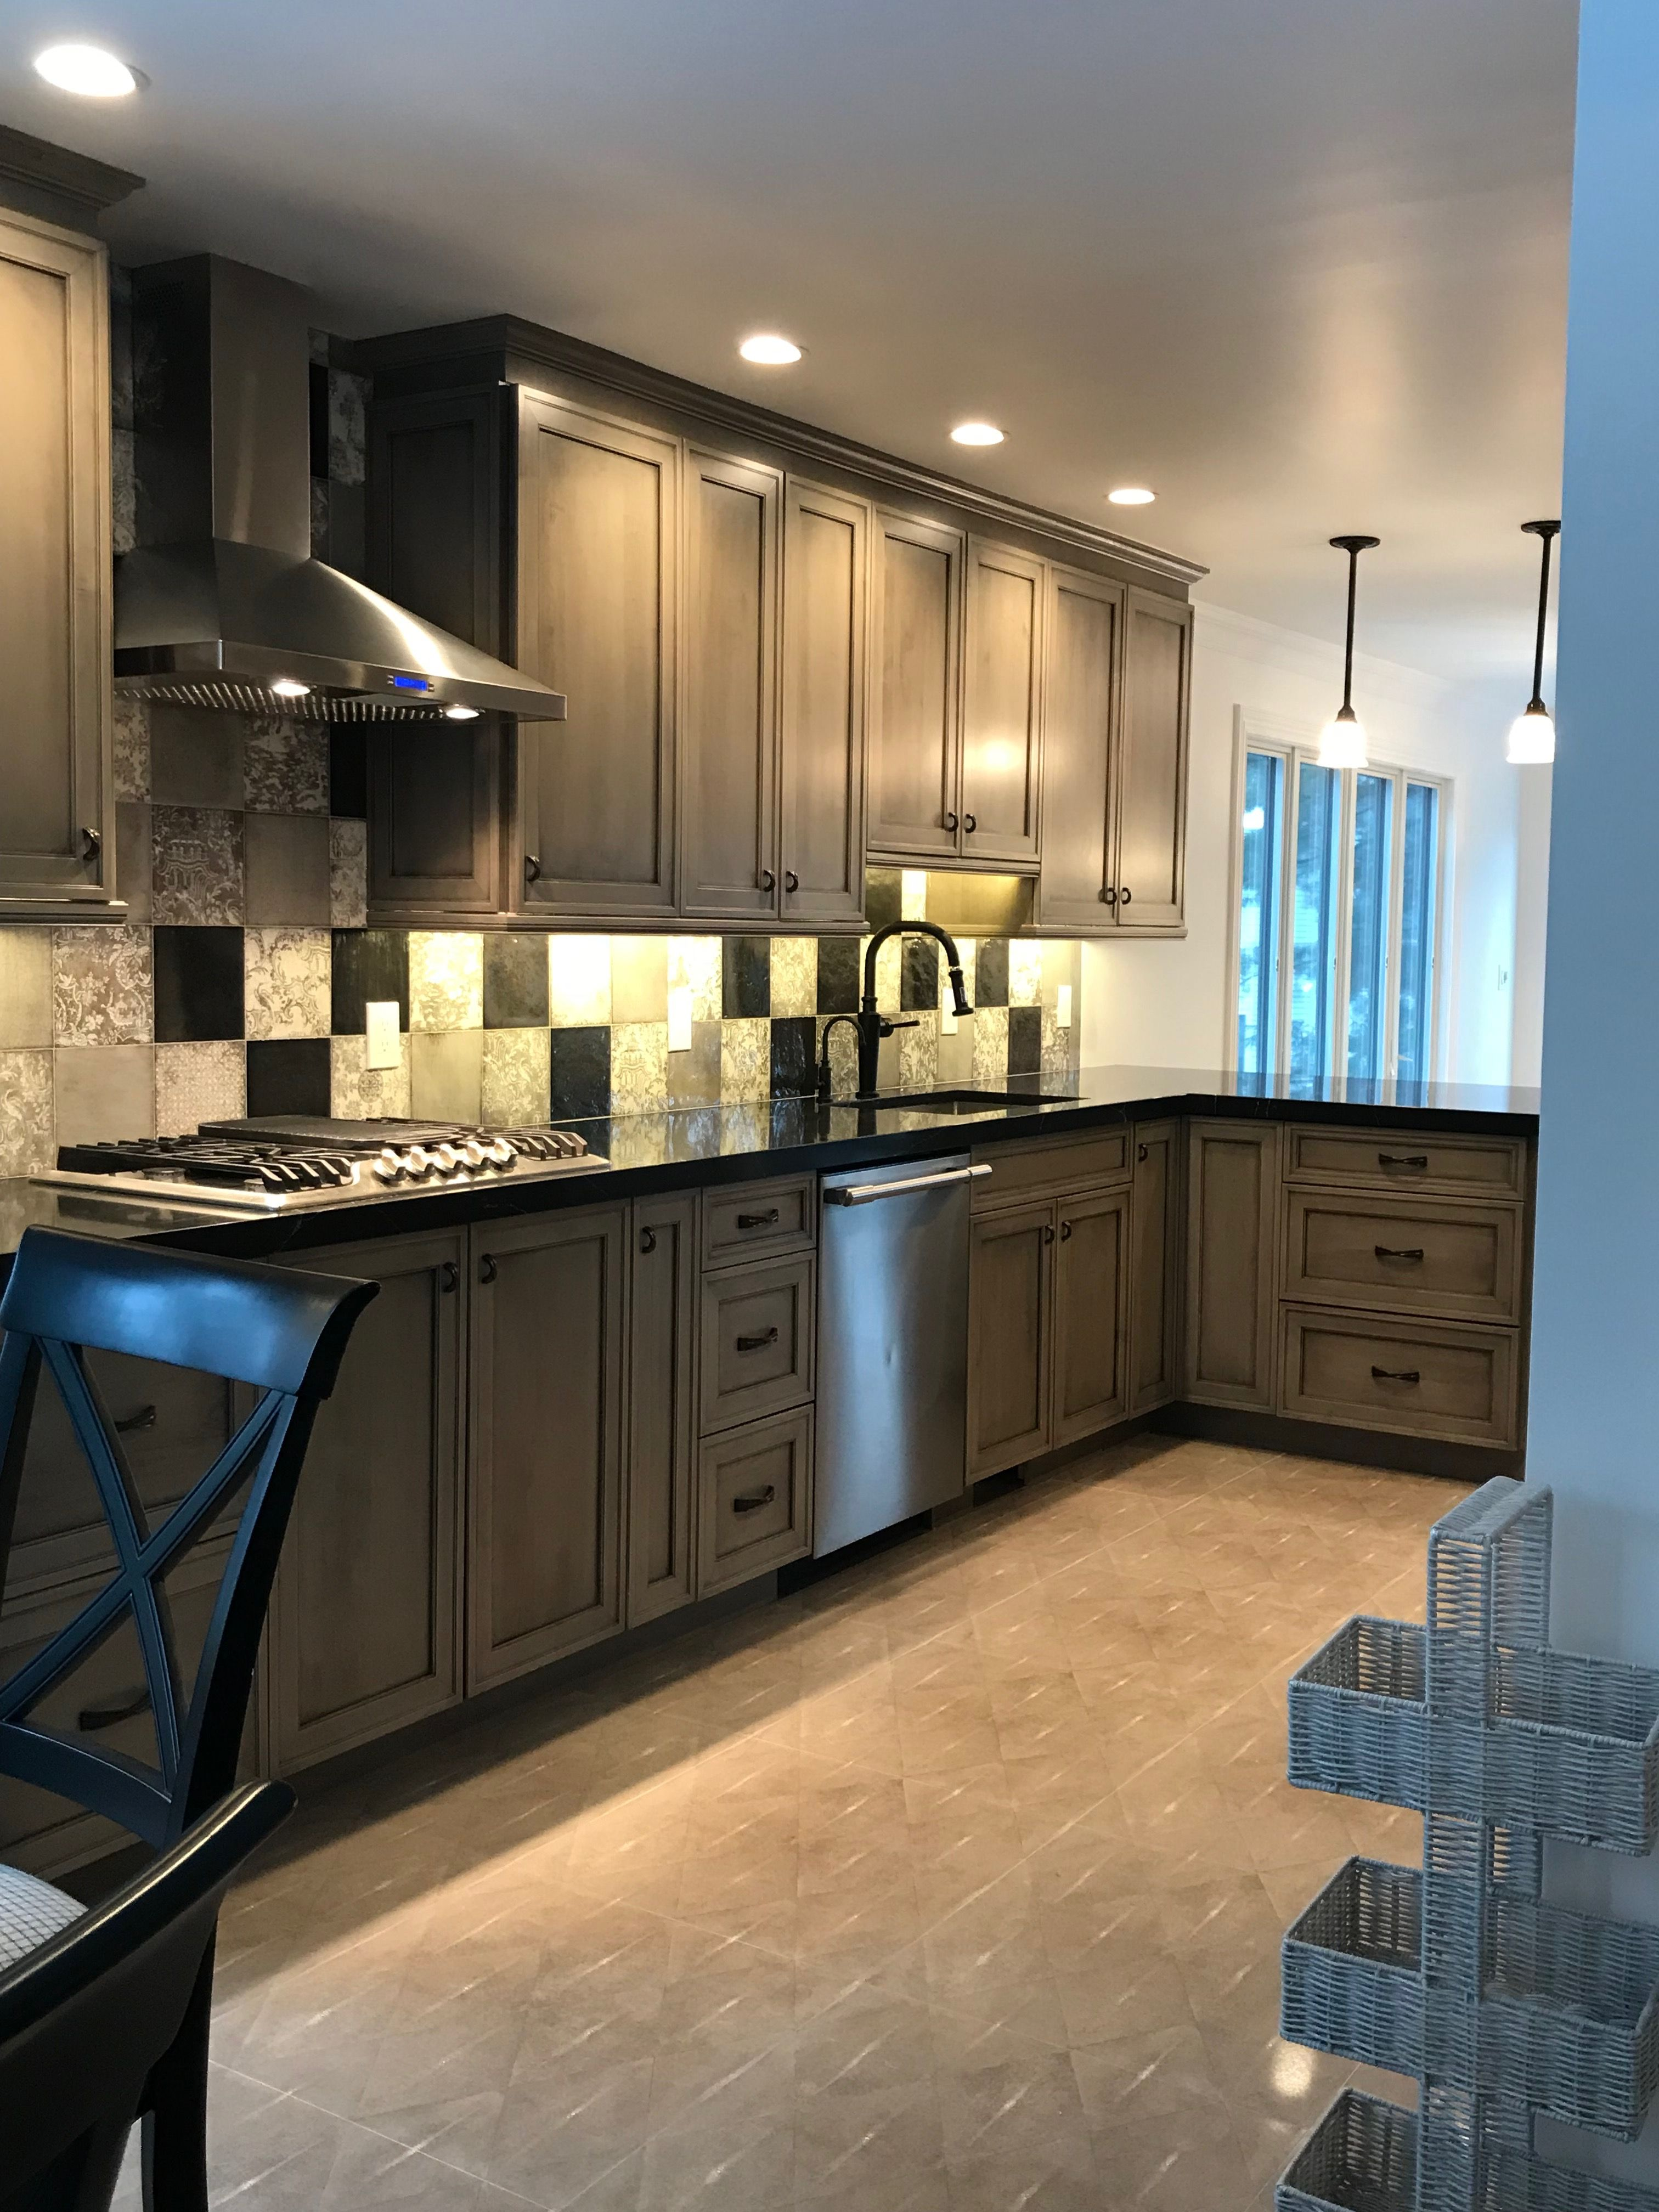 Find This Pin And More On Projects Designed By CK Kitchen U0026 Bath Design,  Inc. By Cktiledesigns.